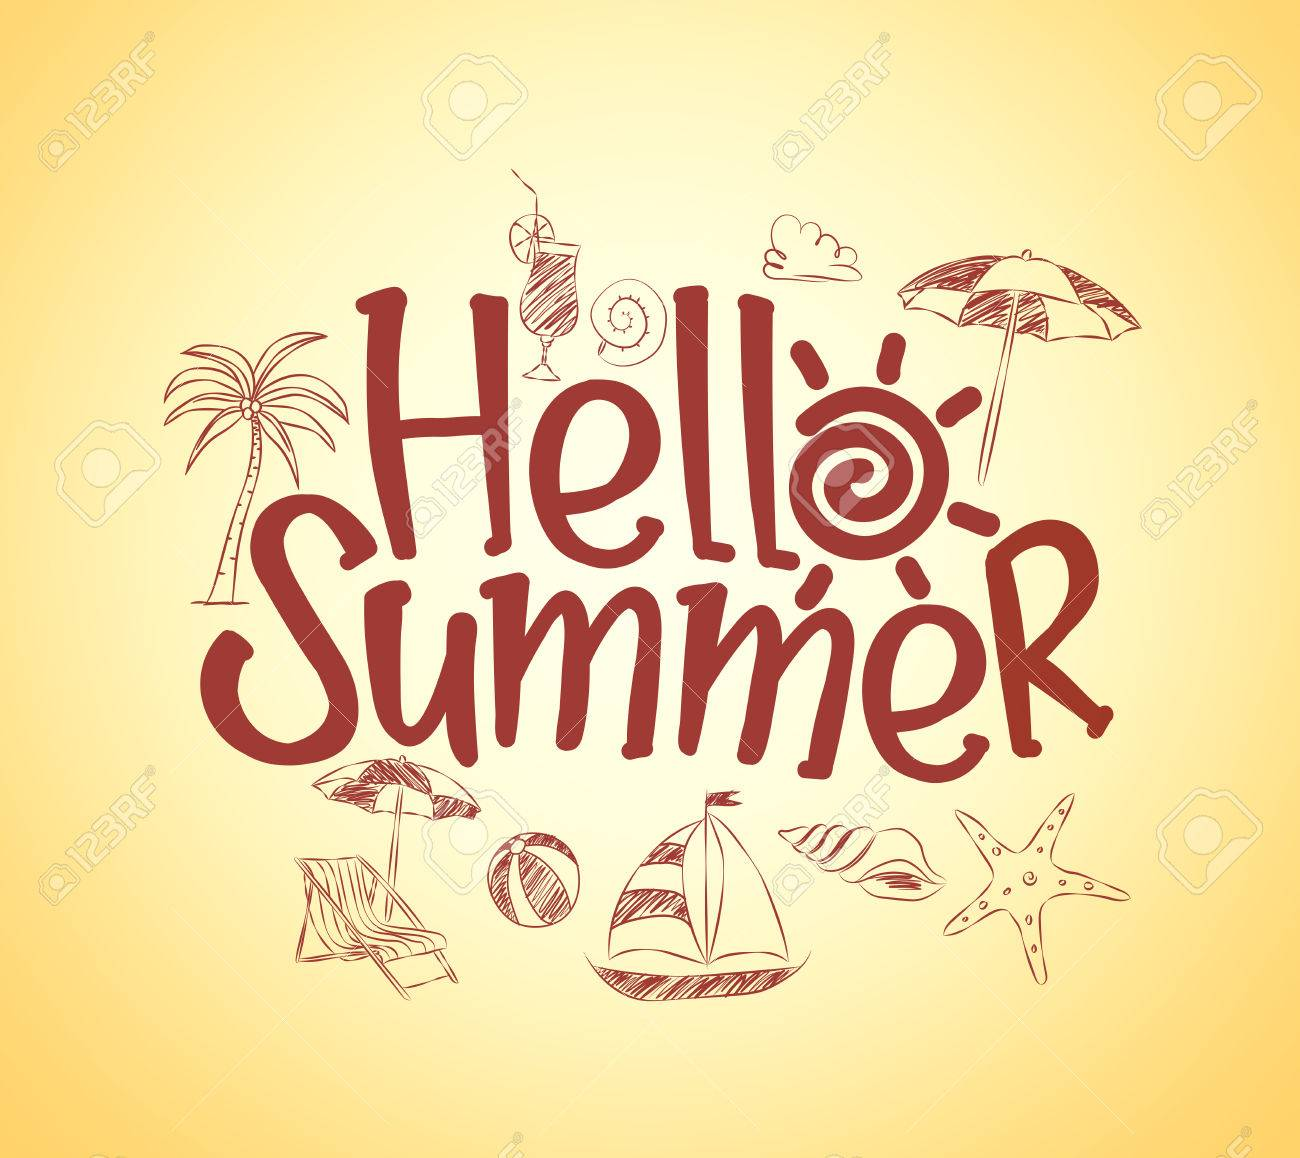 Simple Hello Summer Poster Design with Hand Drawing Vector Elements and Decoration of Summer Items in Yellow Background. Vector Illustration - 52478178